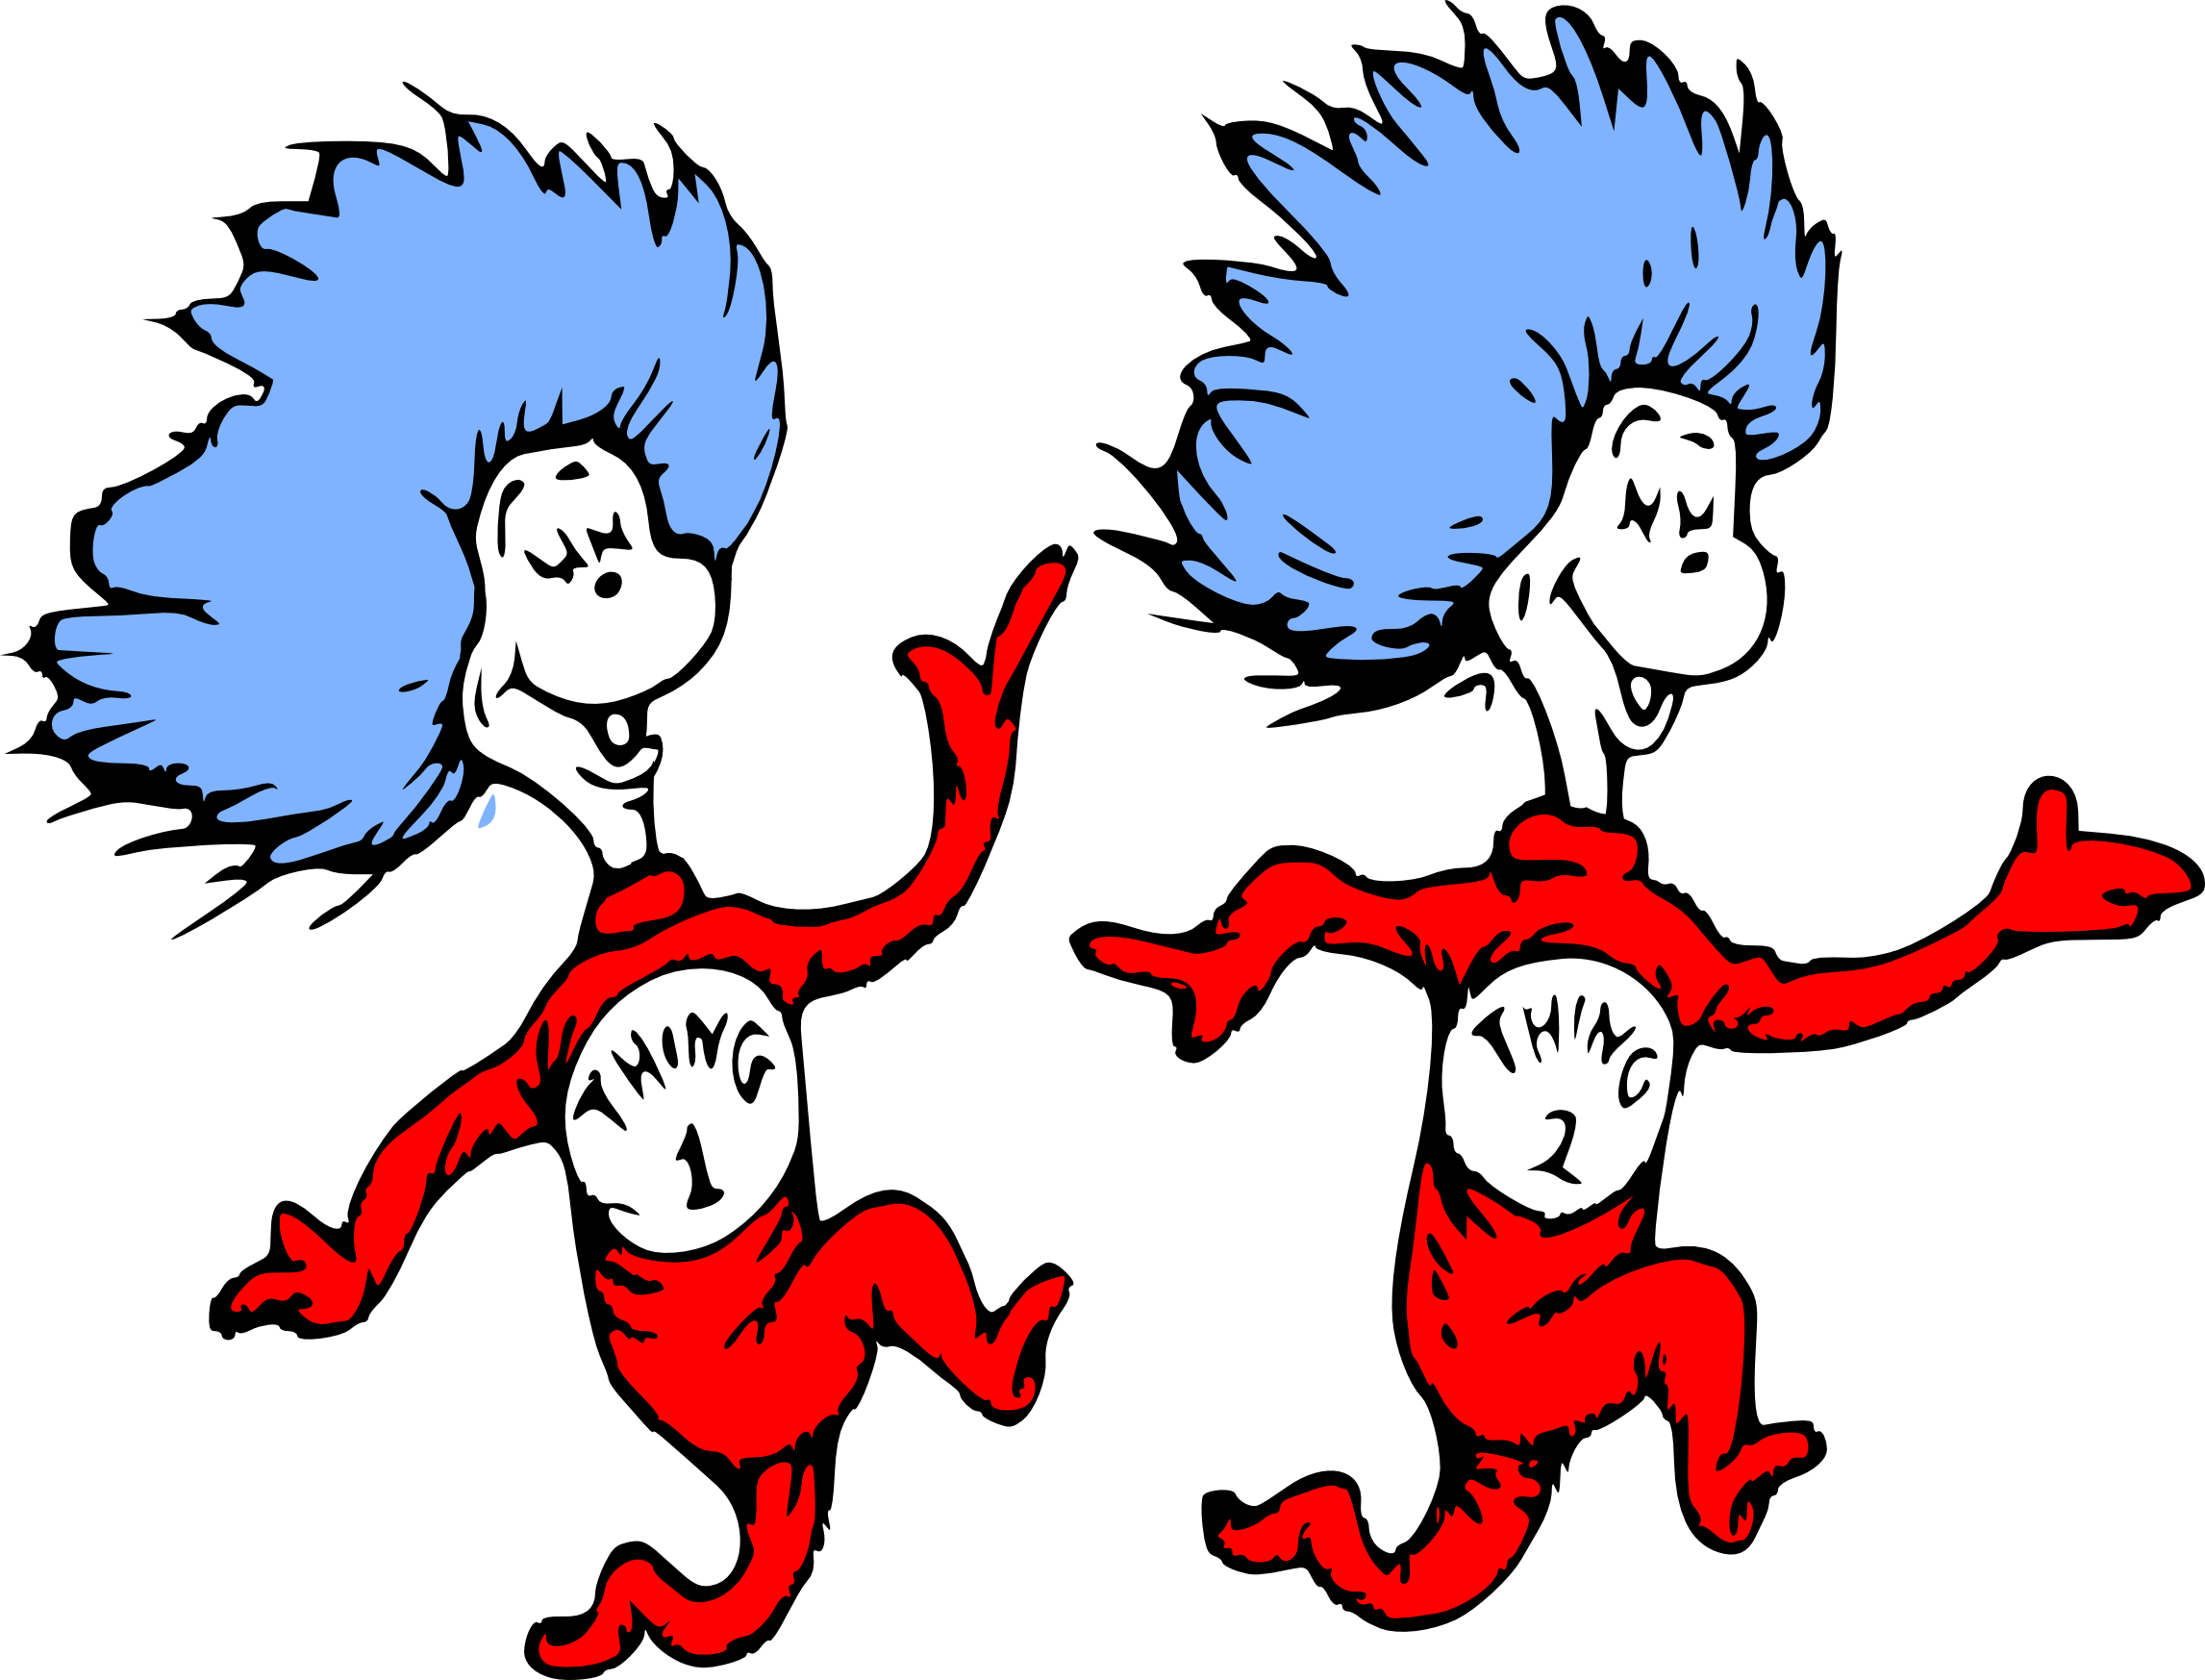 Dr seuss thing 1 and thing 2 png. Wall character kids room